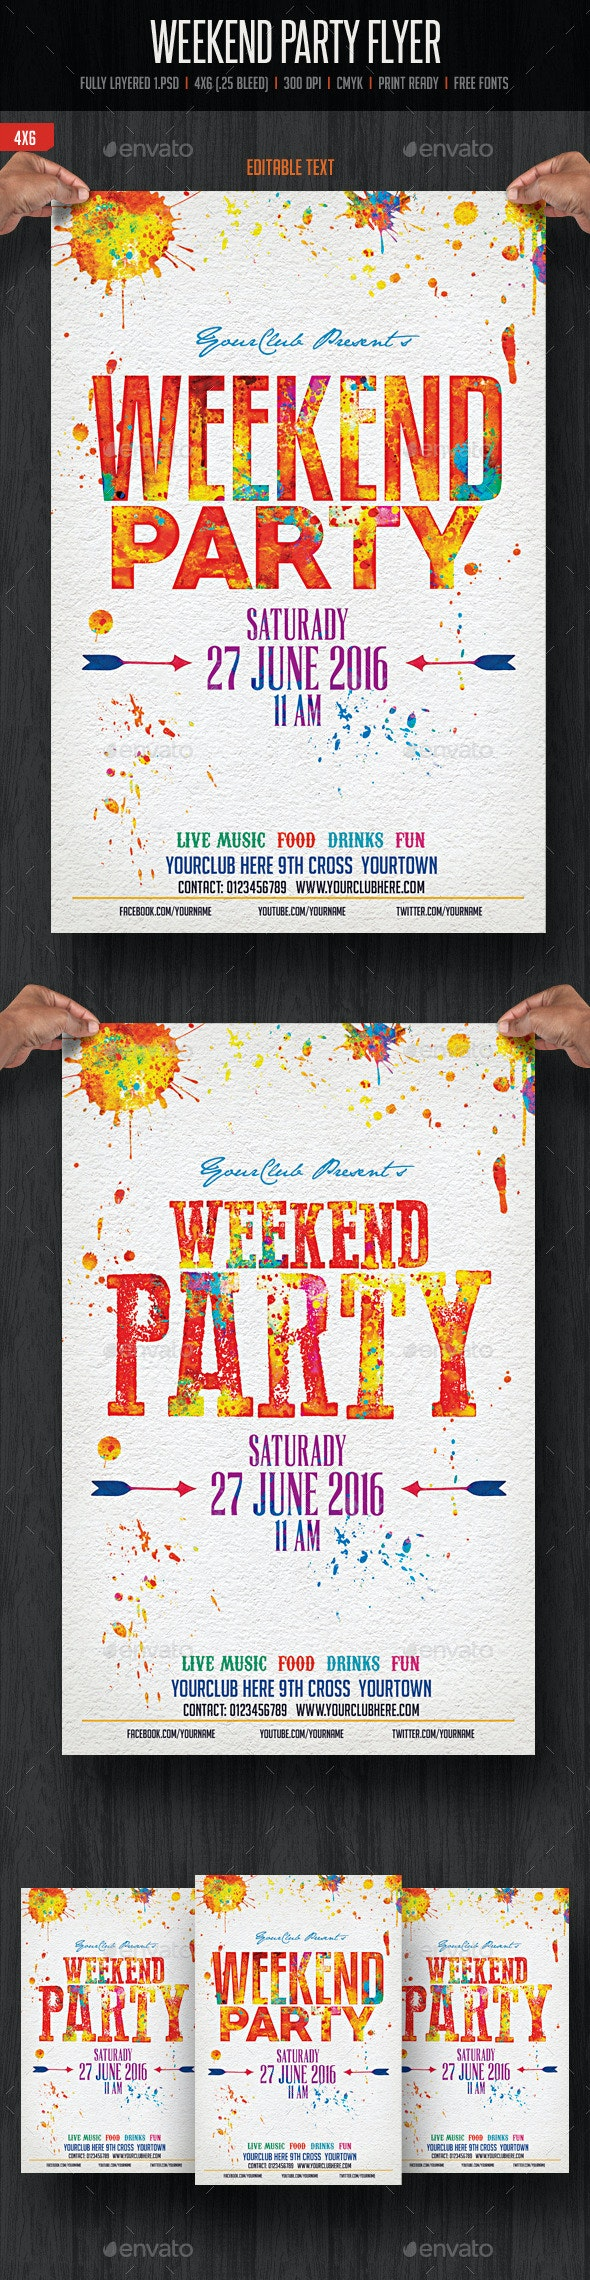 Weekend Party Flyer - Flyers Print Templates